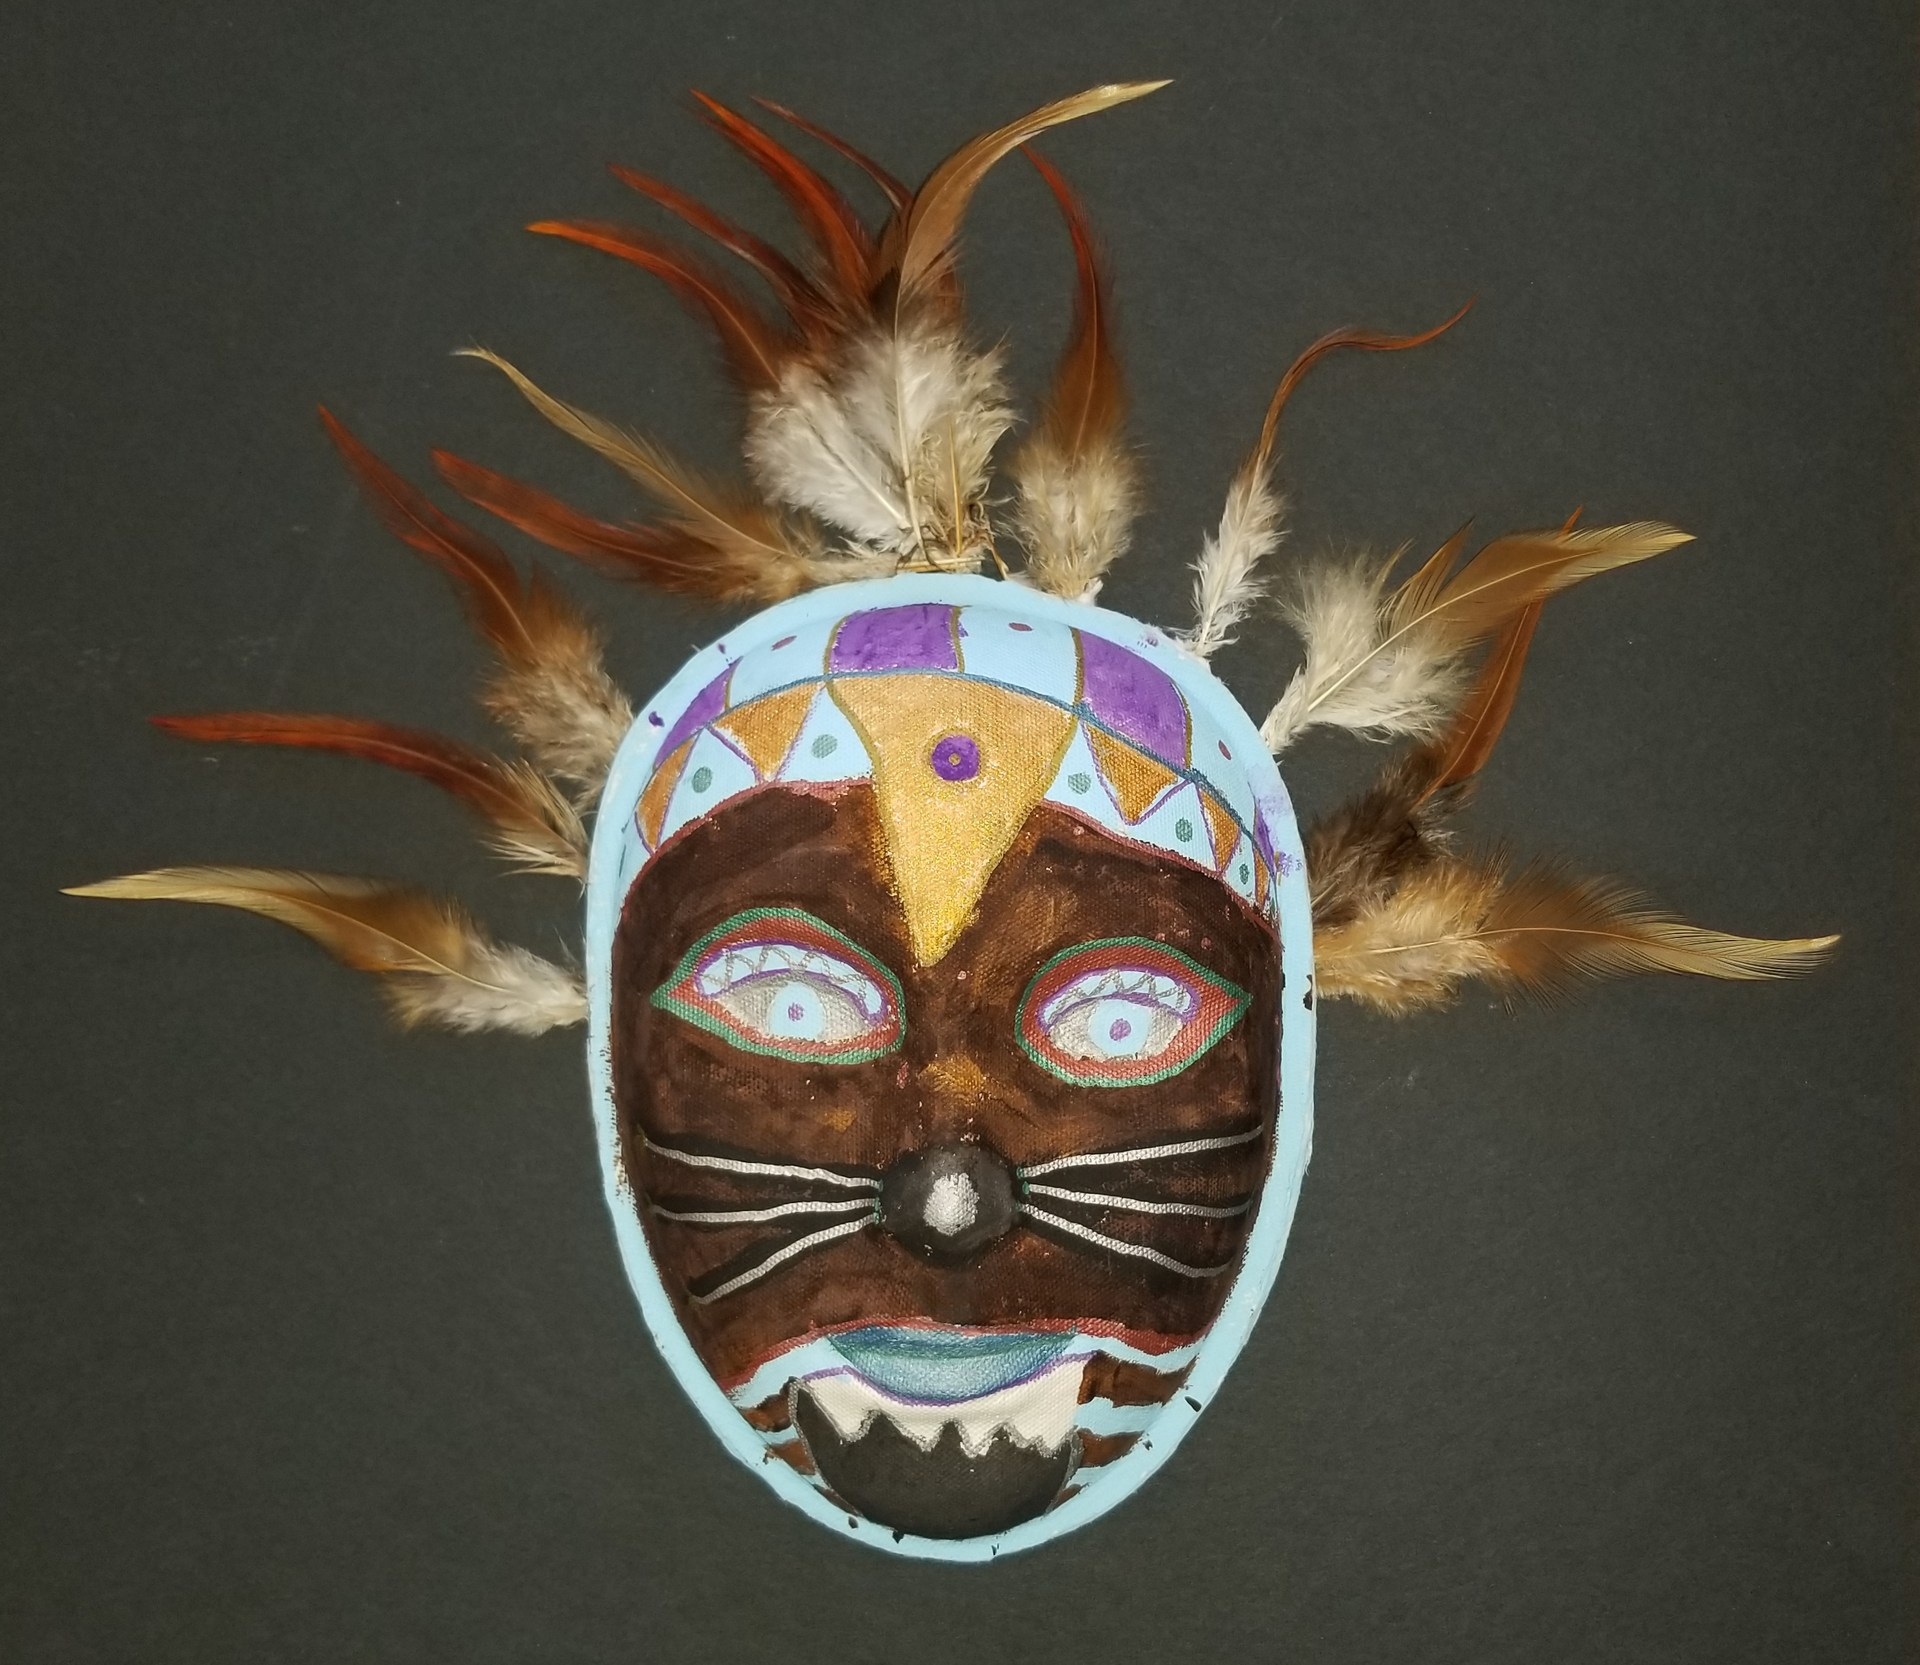 sculpture of a mask